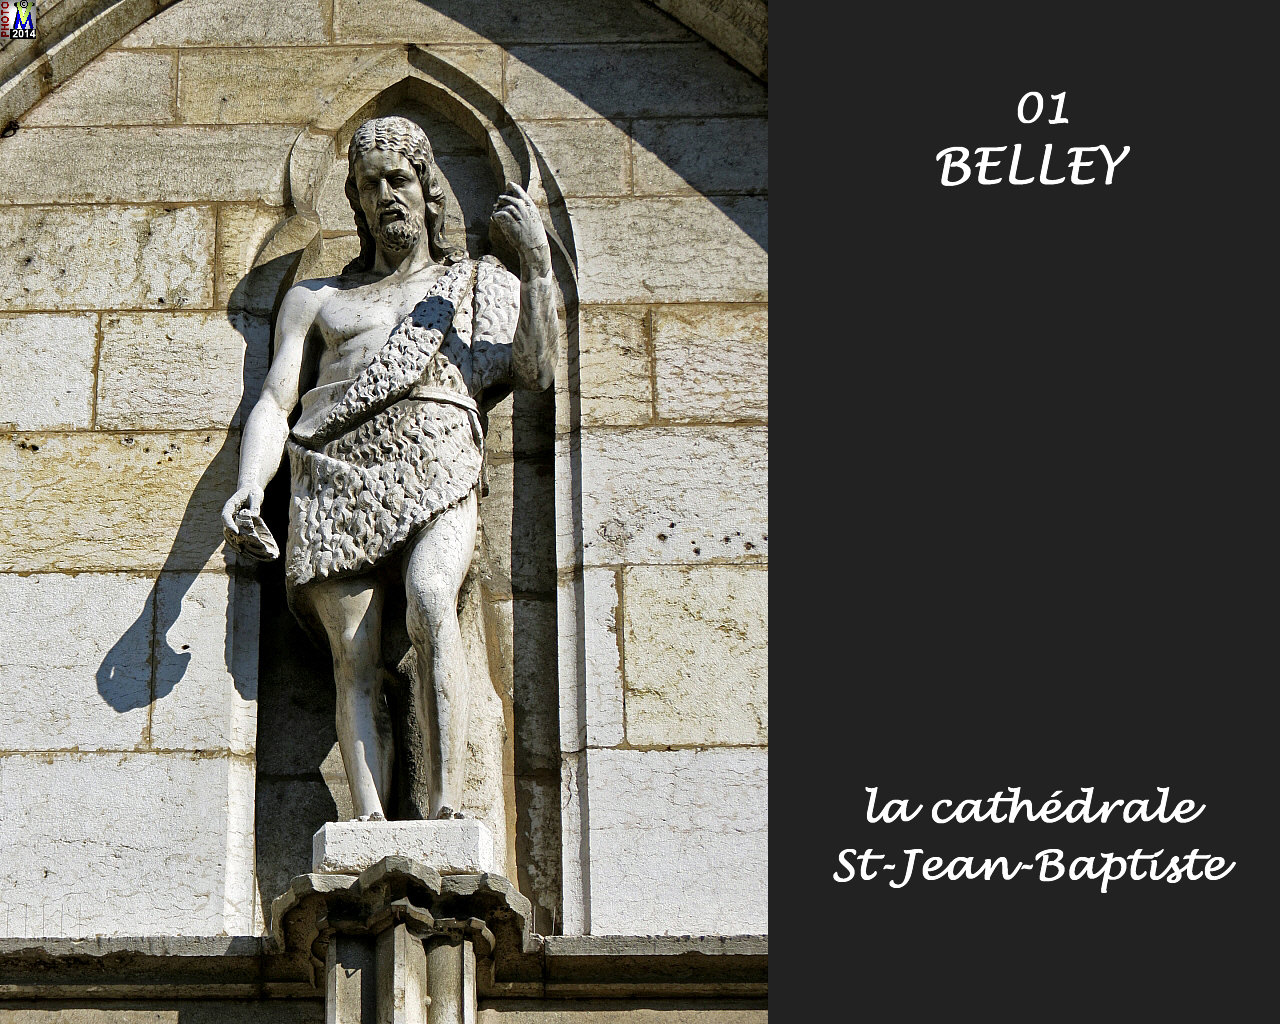 01BELLEY_cathedrale_122.jpg